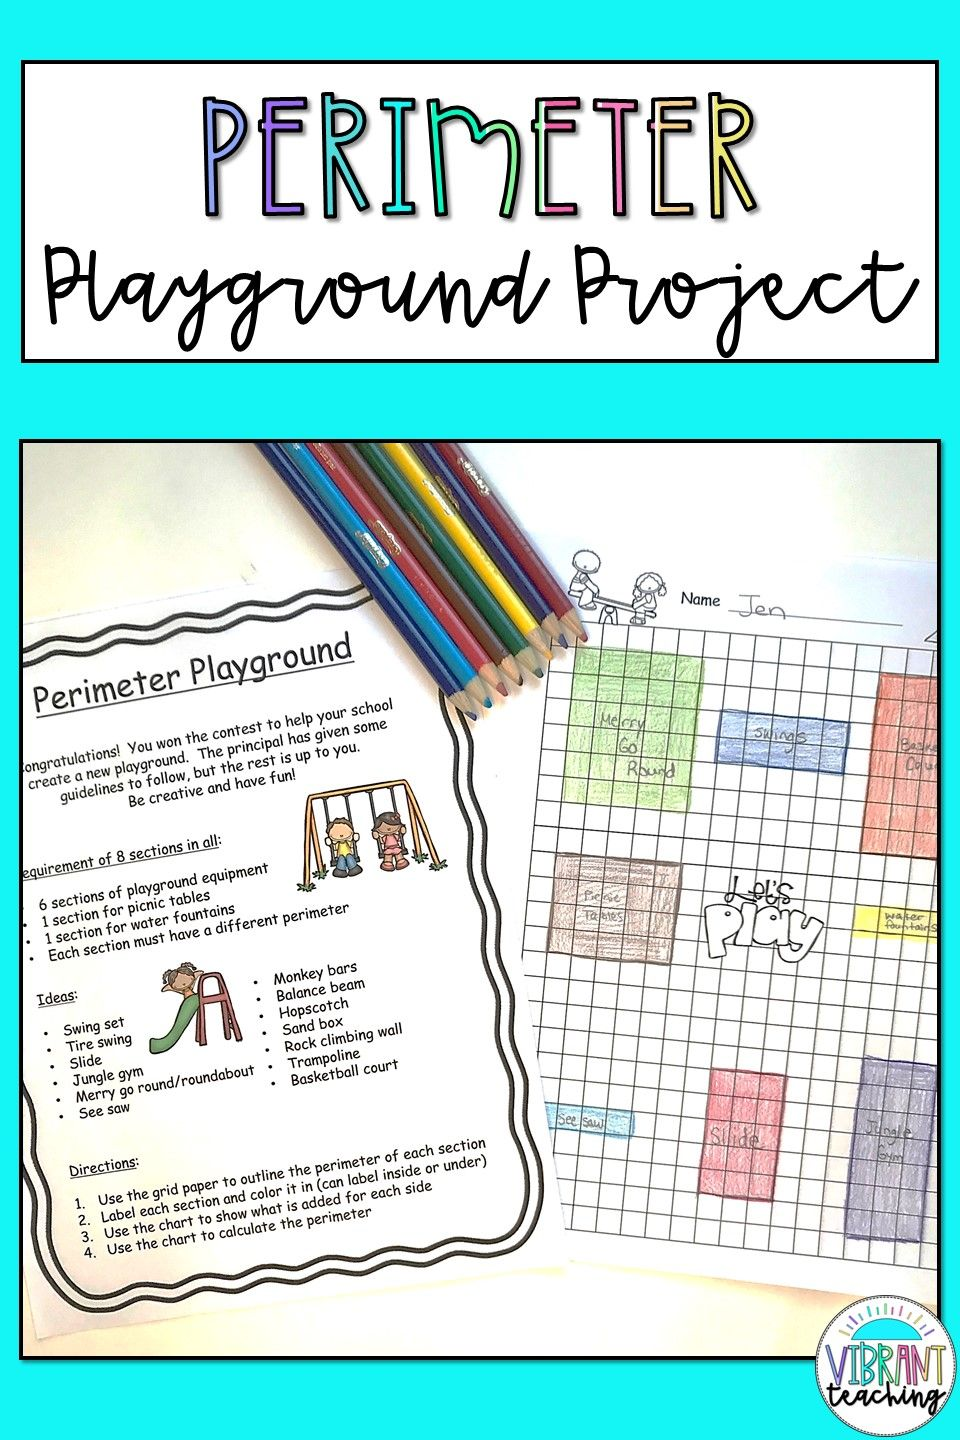 Perimeter Activity Playground Project 2nd Grade Math Worksheets Perimeter Activities Math Worksheets [ 1440 x 960 Pixel ]